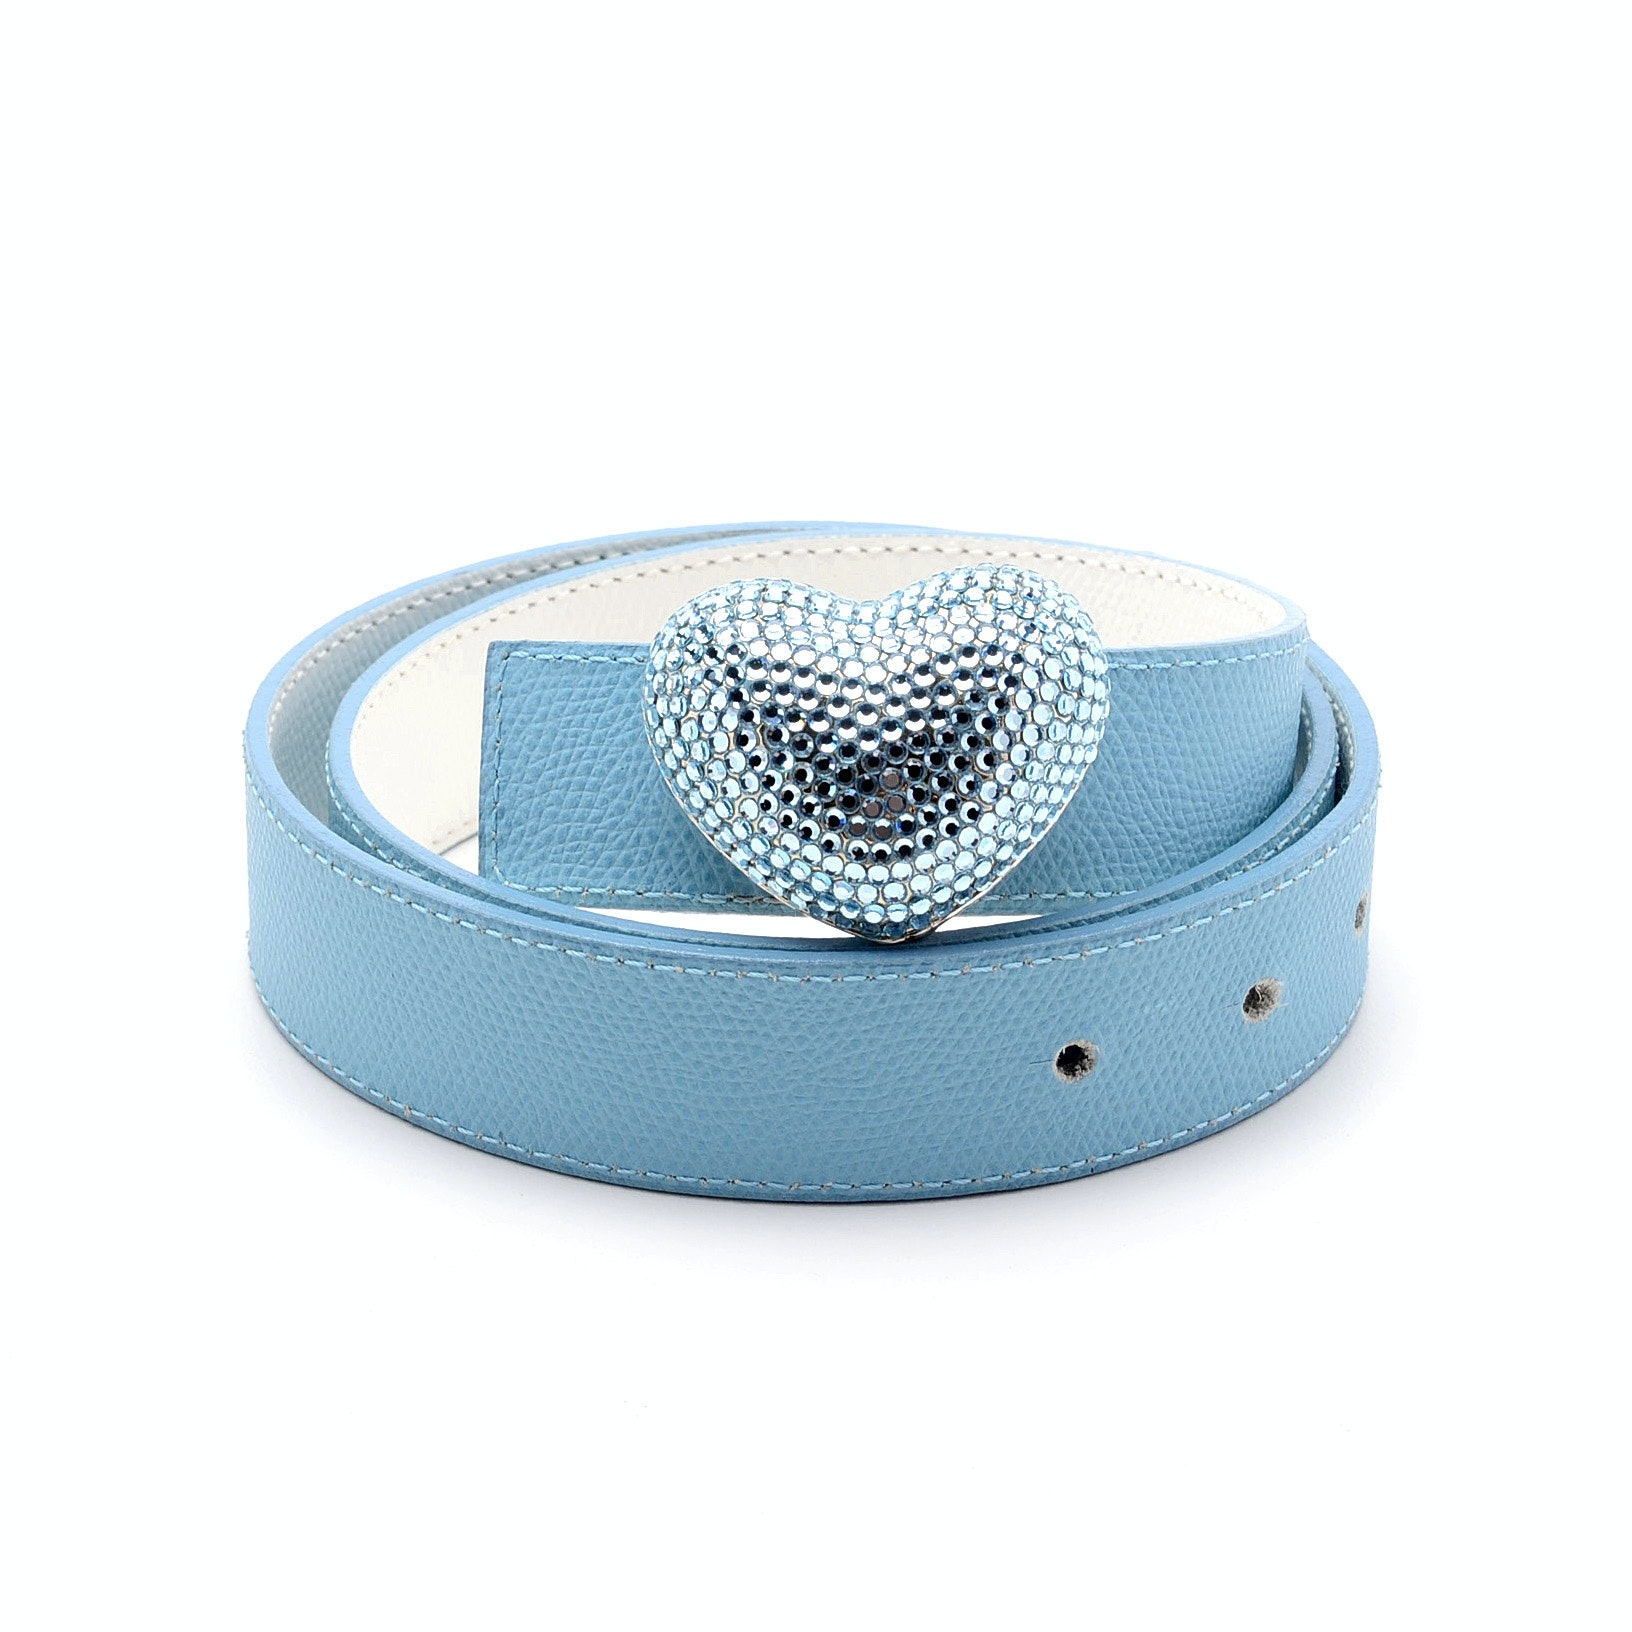 Pastel Blue and White Lizard Skin Leather Belt with Eliza Gray Heart Shape Blue Swarovski Crystal Encrusted Buckle